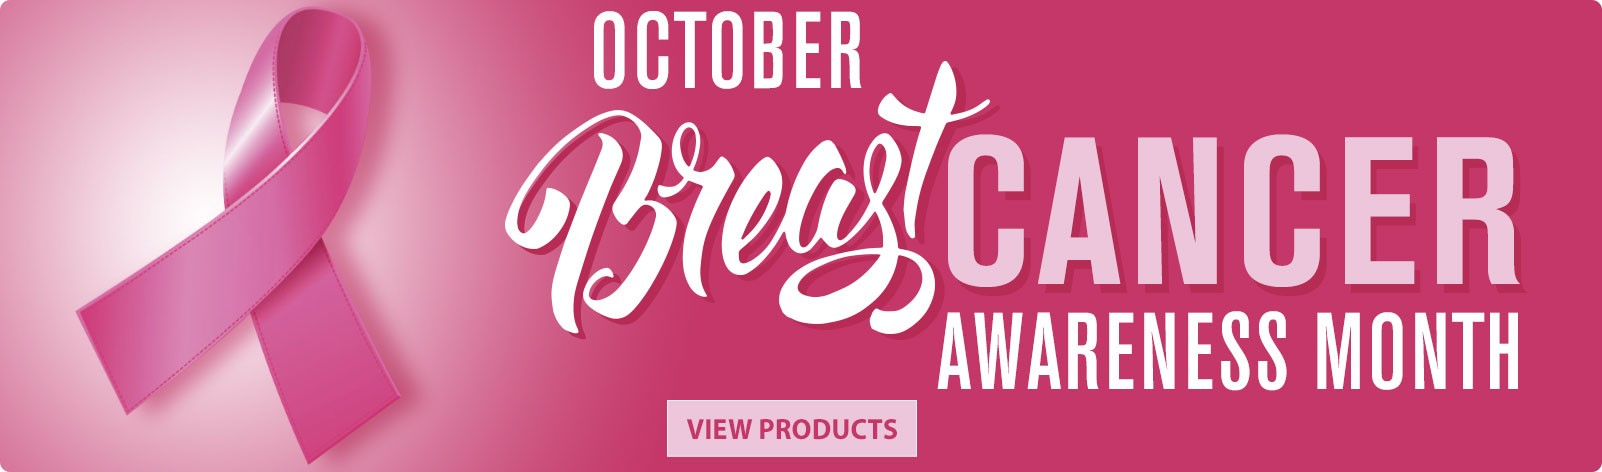 This October observe breast cancer awareness.